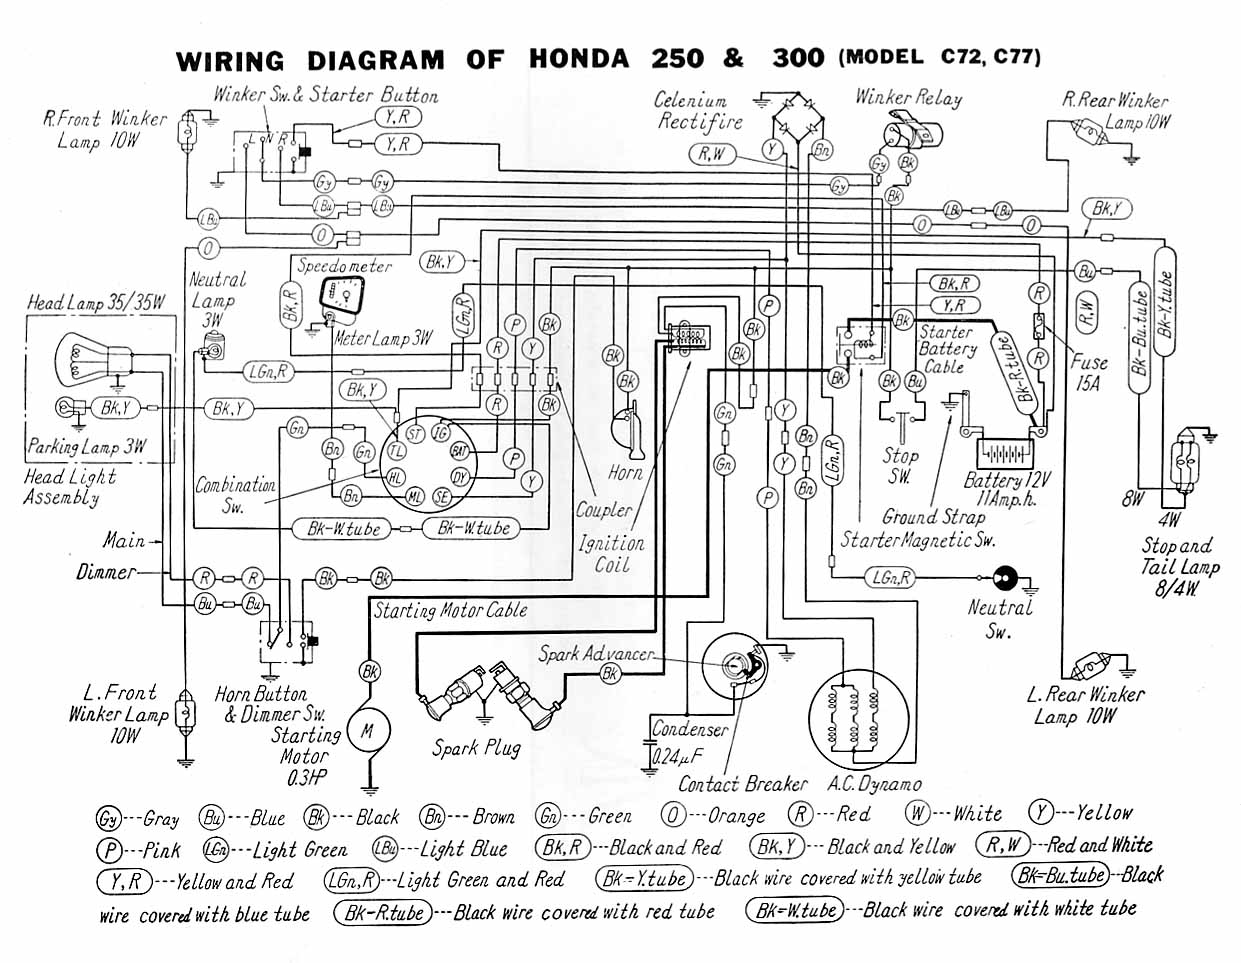 wiring diagrams rh oregonmotorcycleparts com XL350 Cafe Racer XL350 Cafe Racer